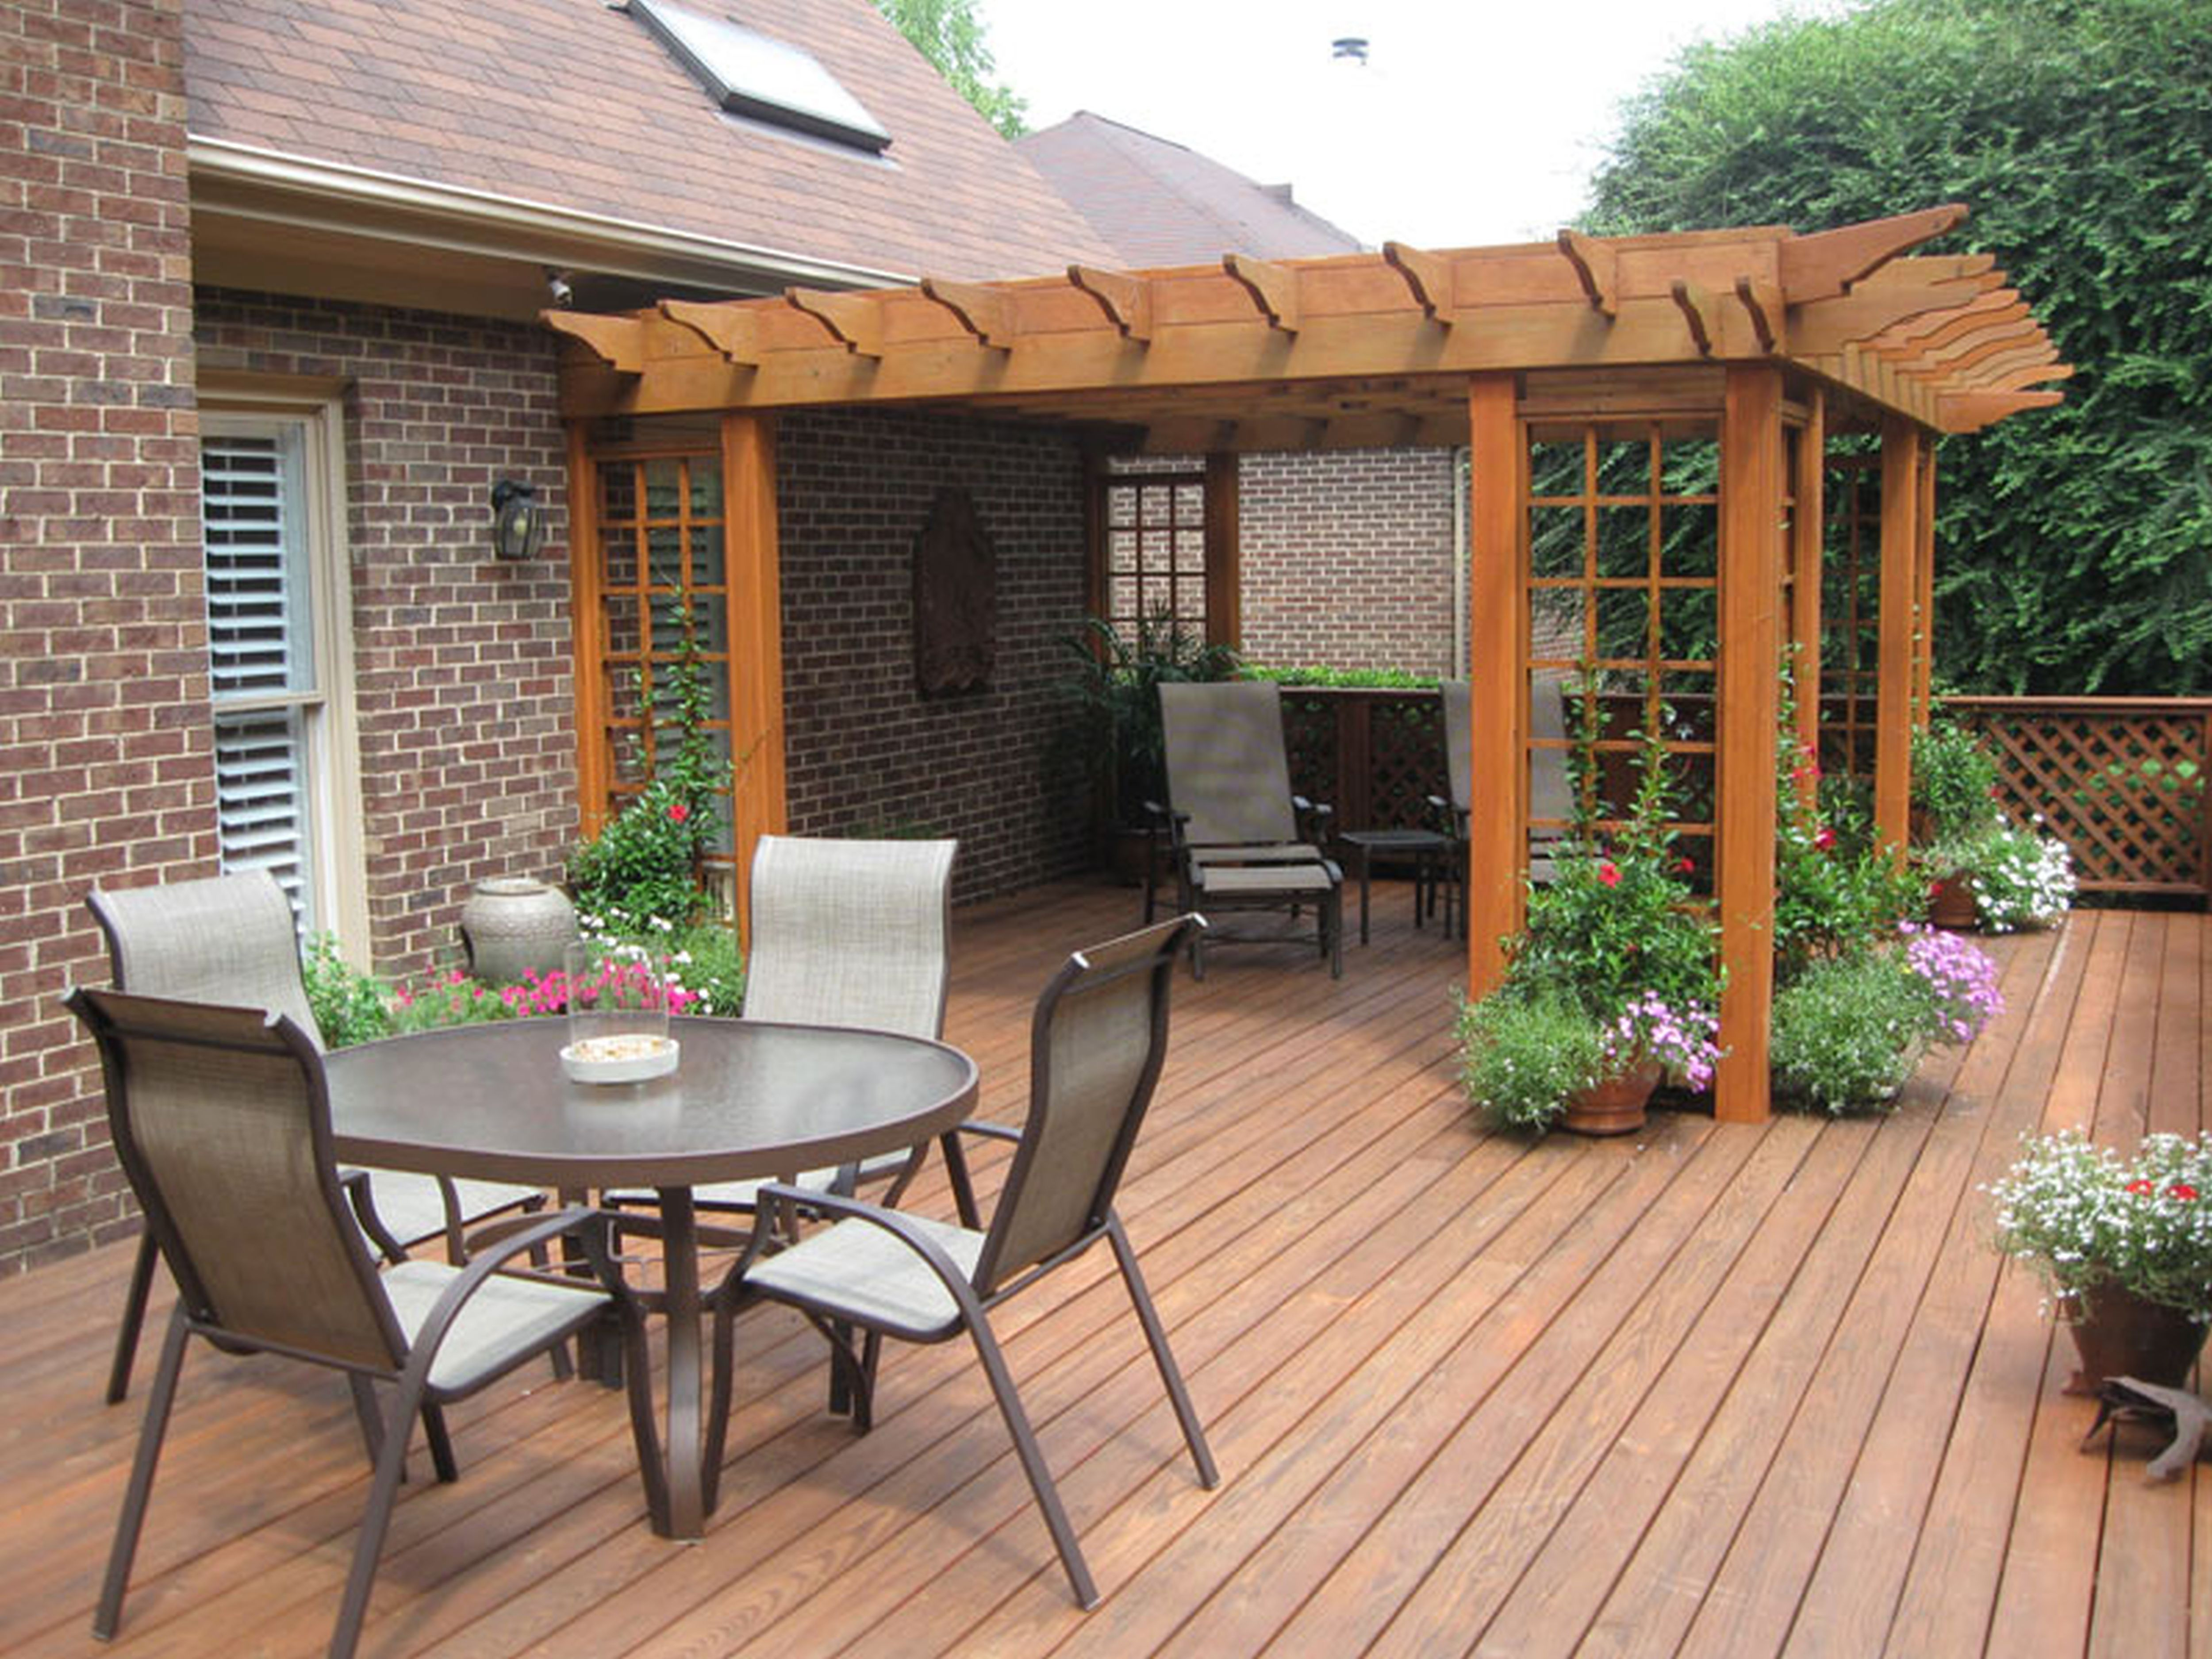 Awesome Home Deck Designs - HomesFeed on Garden Patio Decking Ideas id=12196